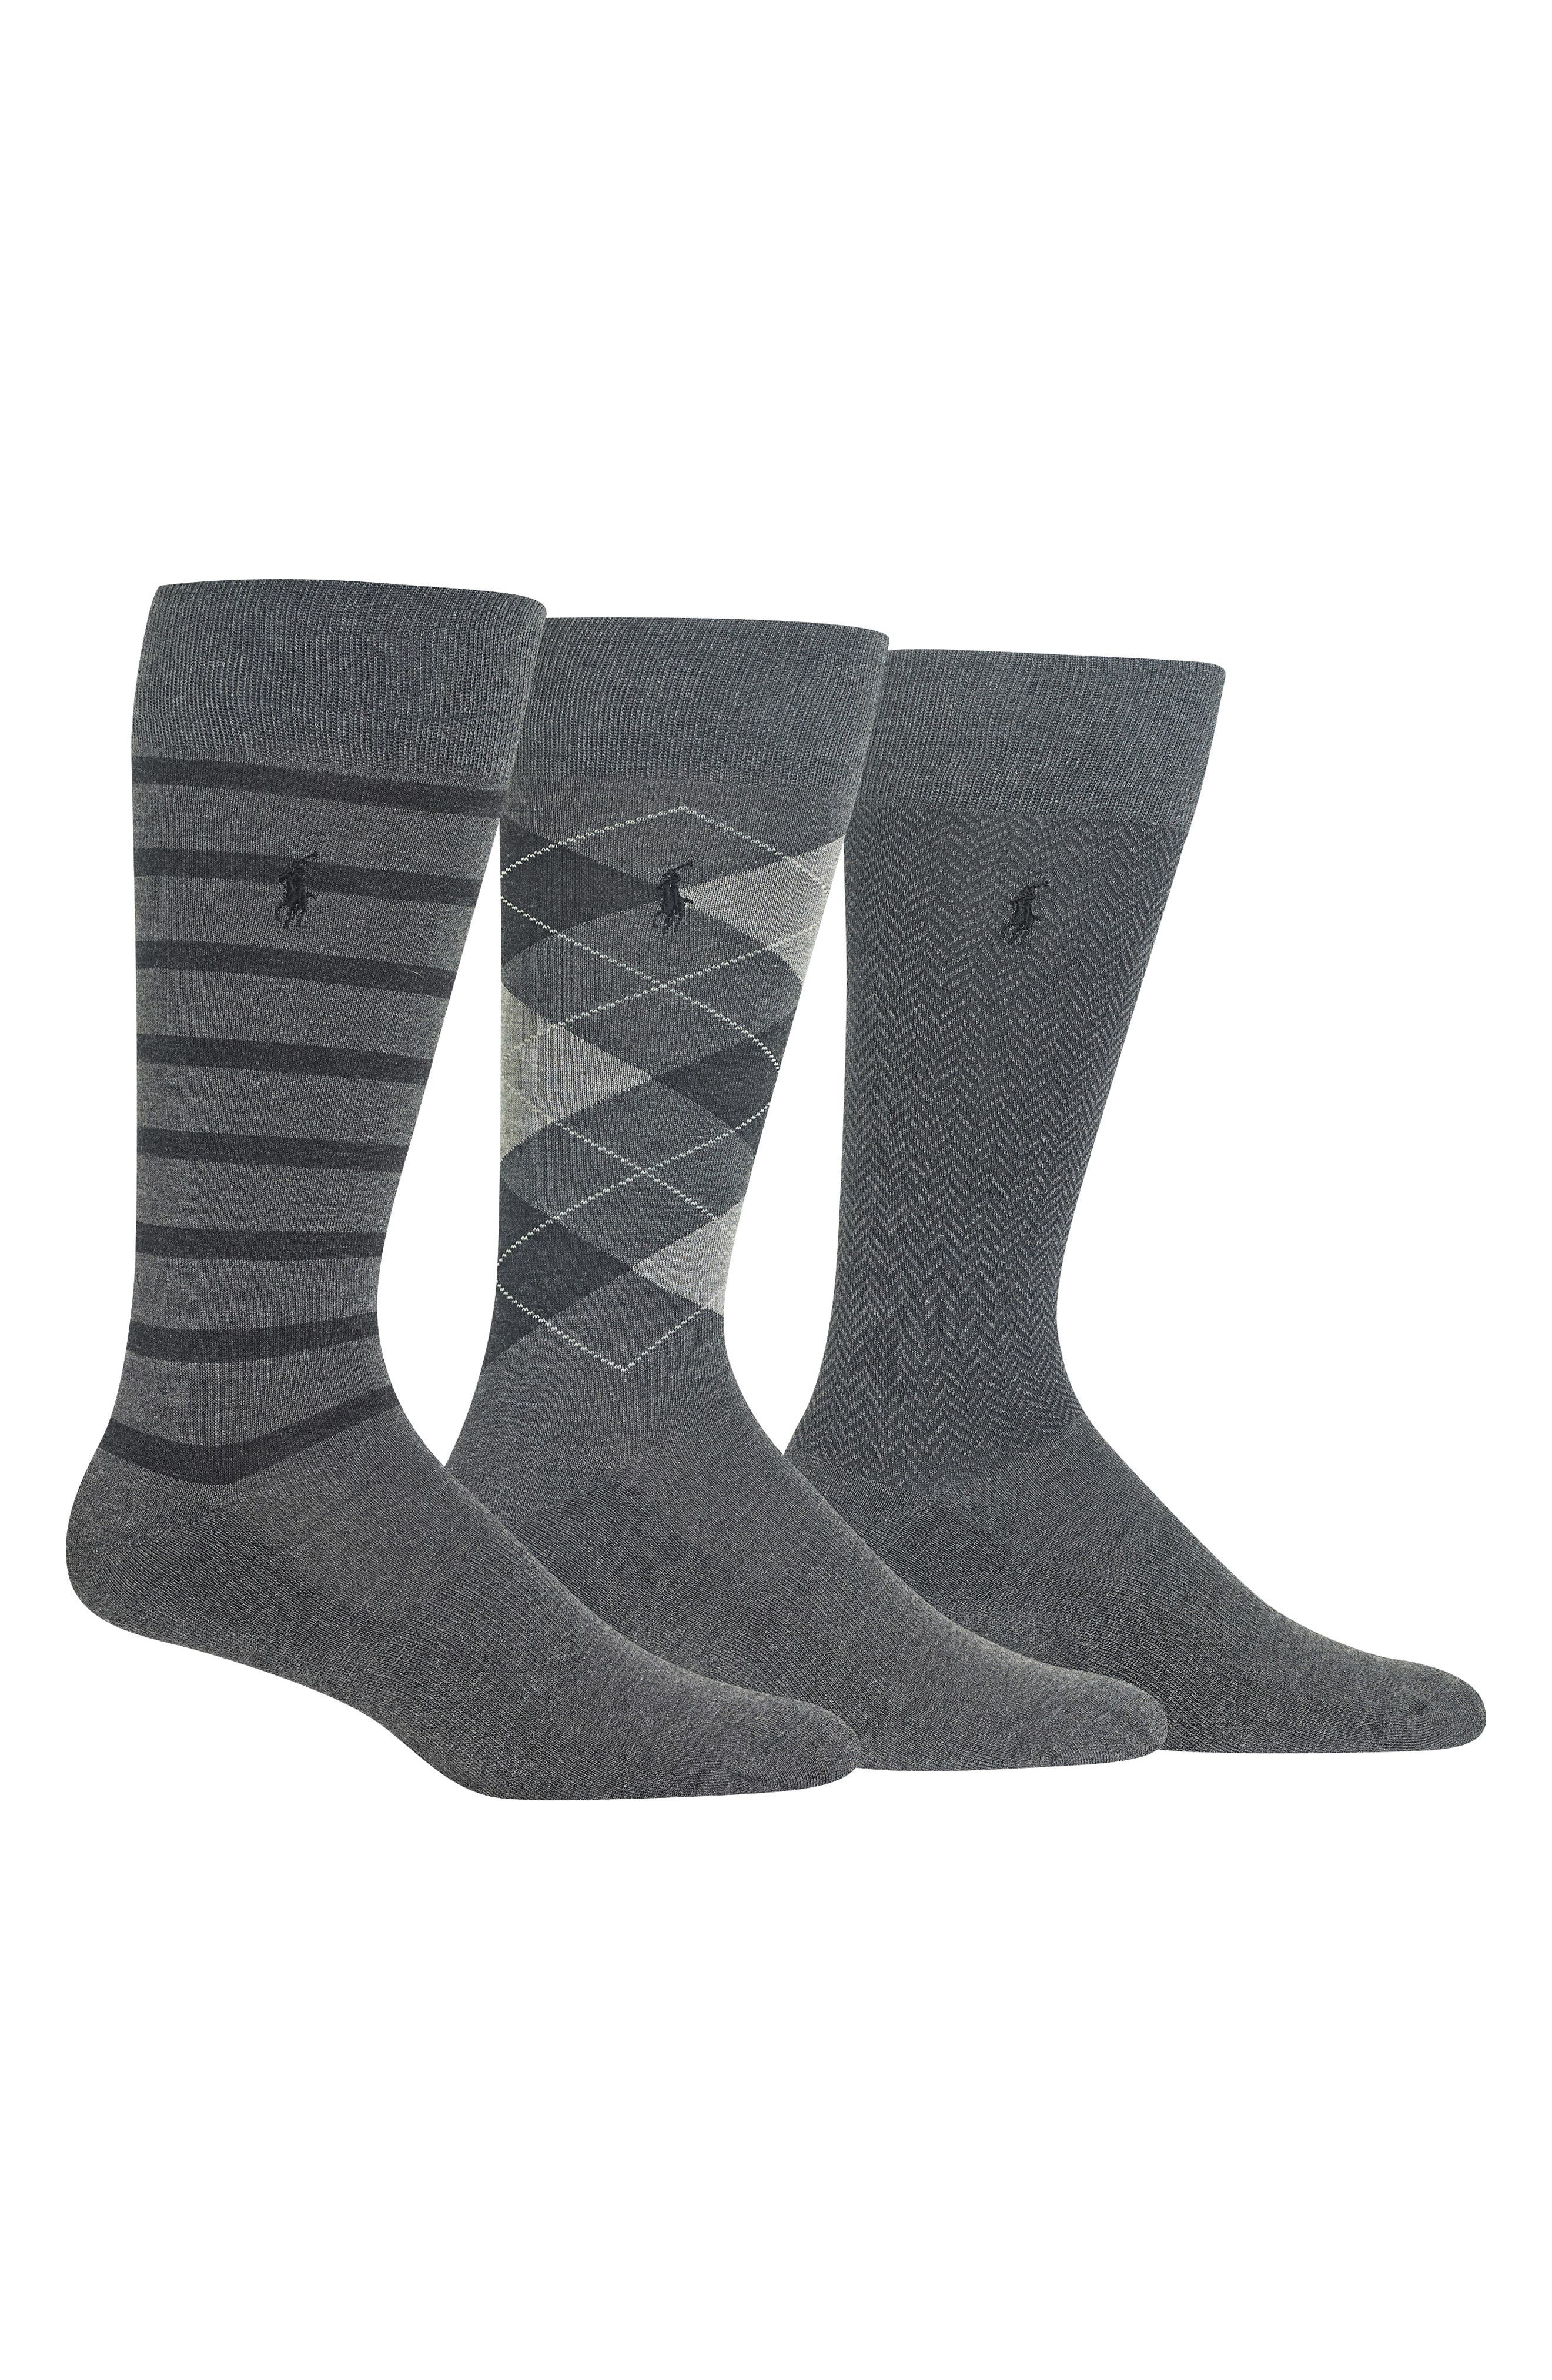 ,                             3-Pack Patterned Socks,                             Main thumbnail 1, color,                             CHARCOAL HEATHER